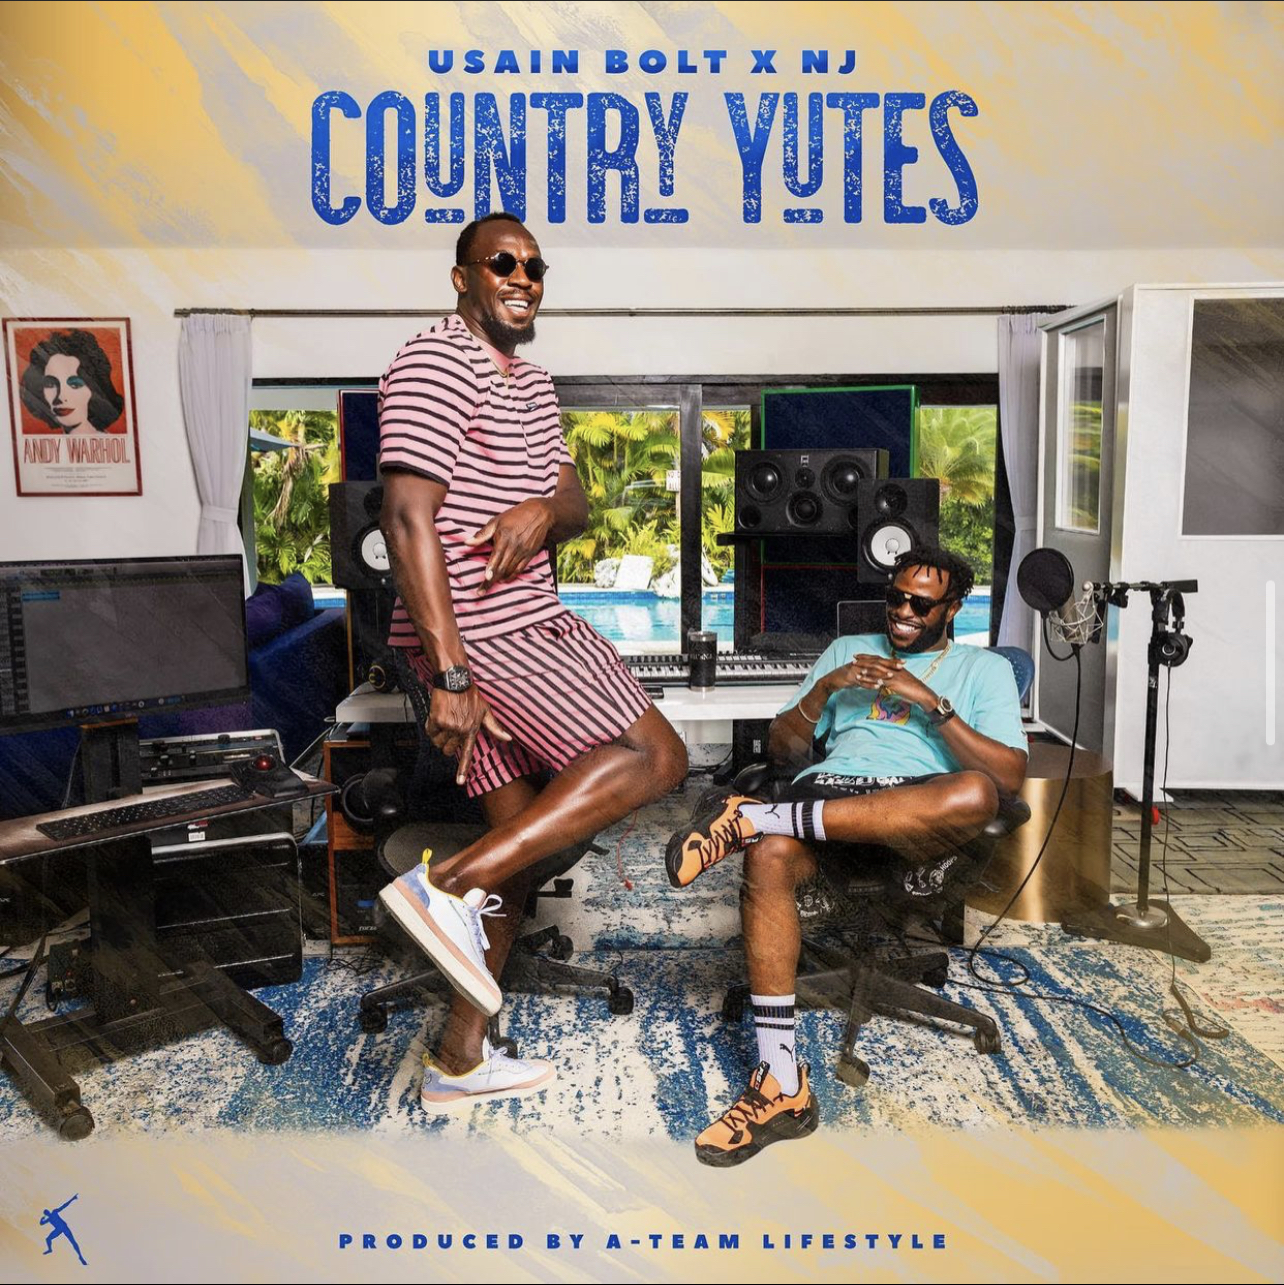 USAIN BOLT HITS TOP TEN WITH 'COUNTRY YUTES'